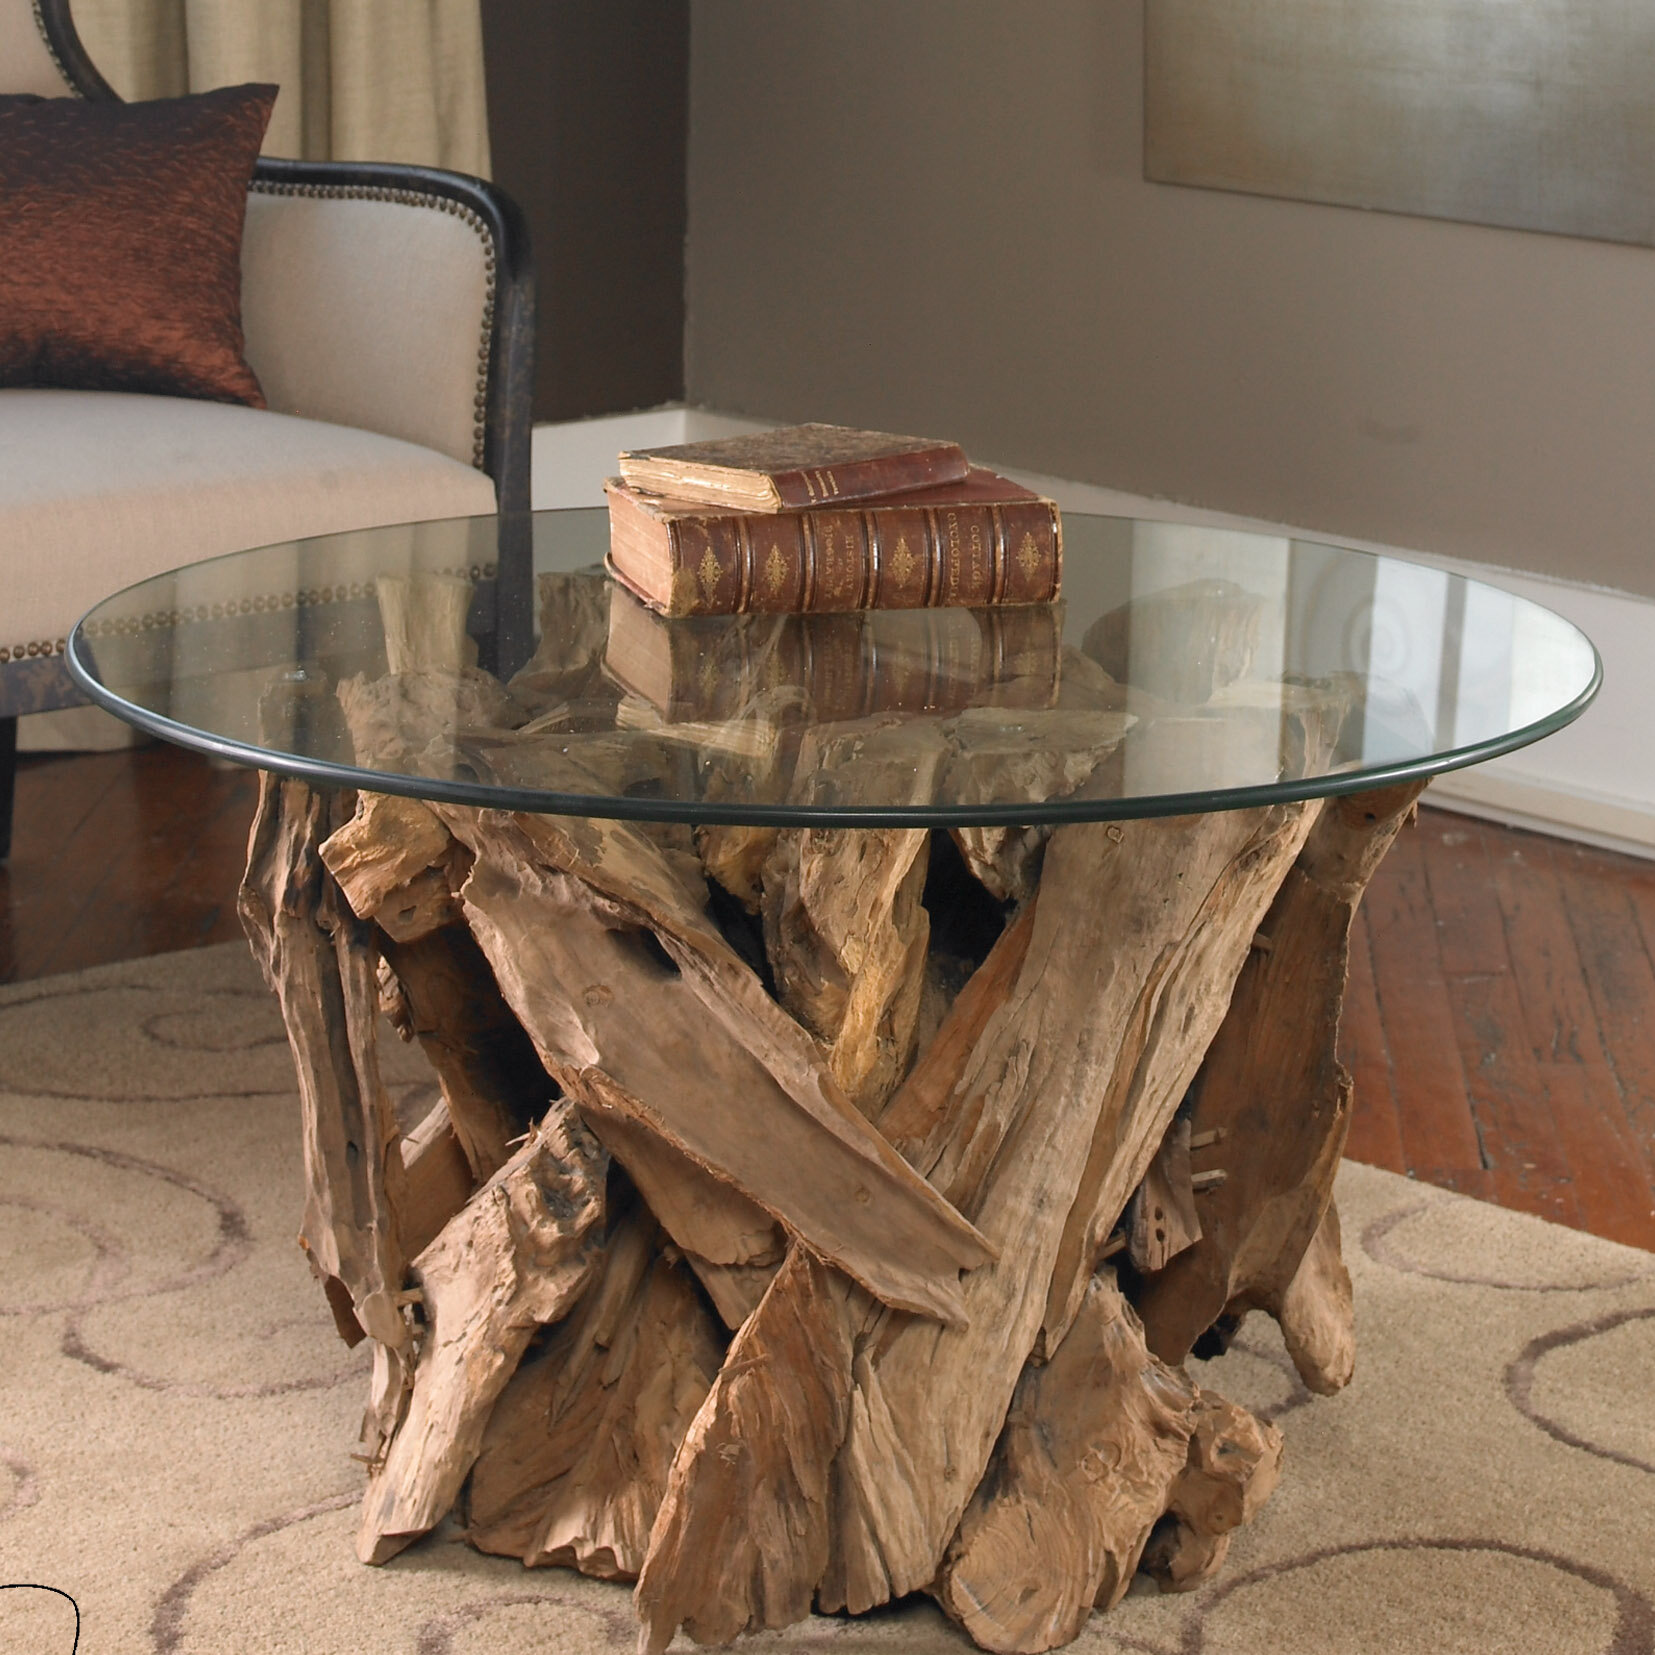 Driftwood Coffee Table.Details About Union Rustic Cindi Driftwood Coffee Table